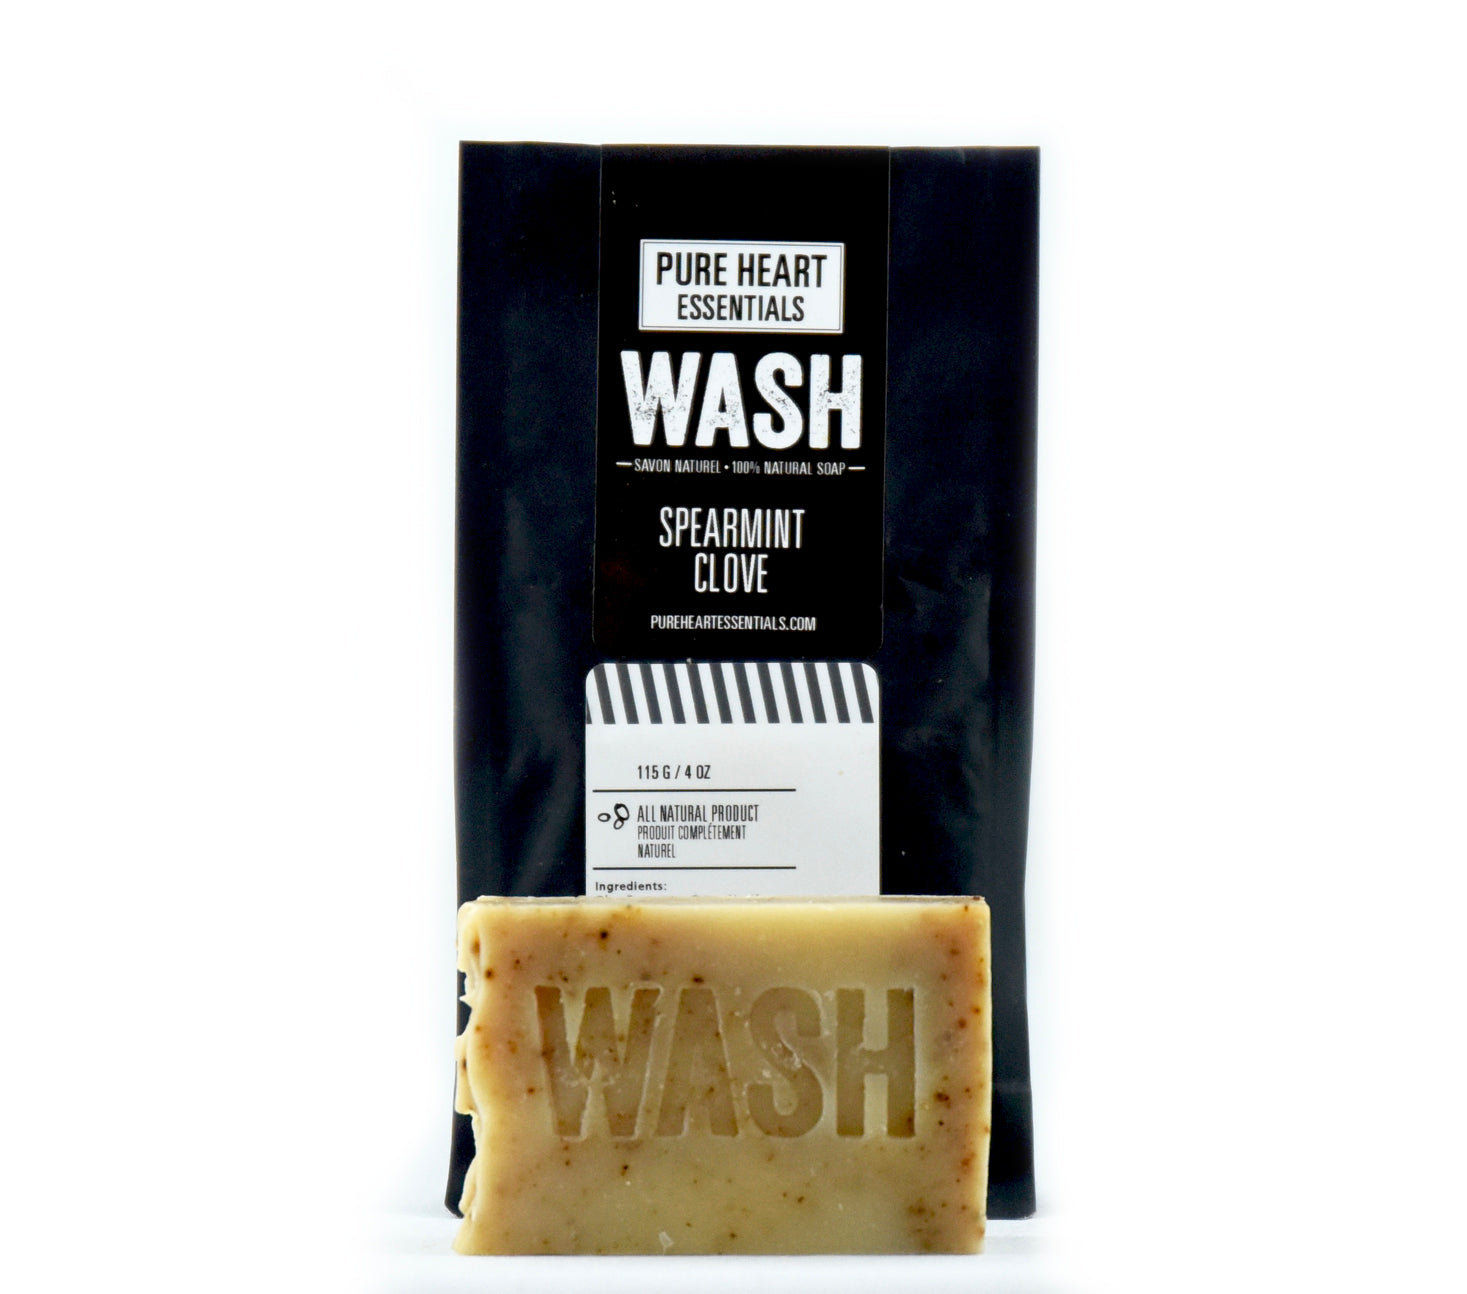 WASH – SPEARMINT/CLOVE SOAP (VEGAN)